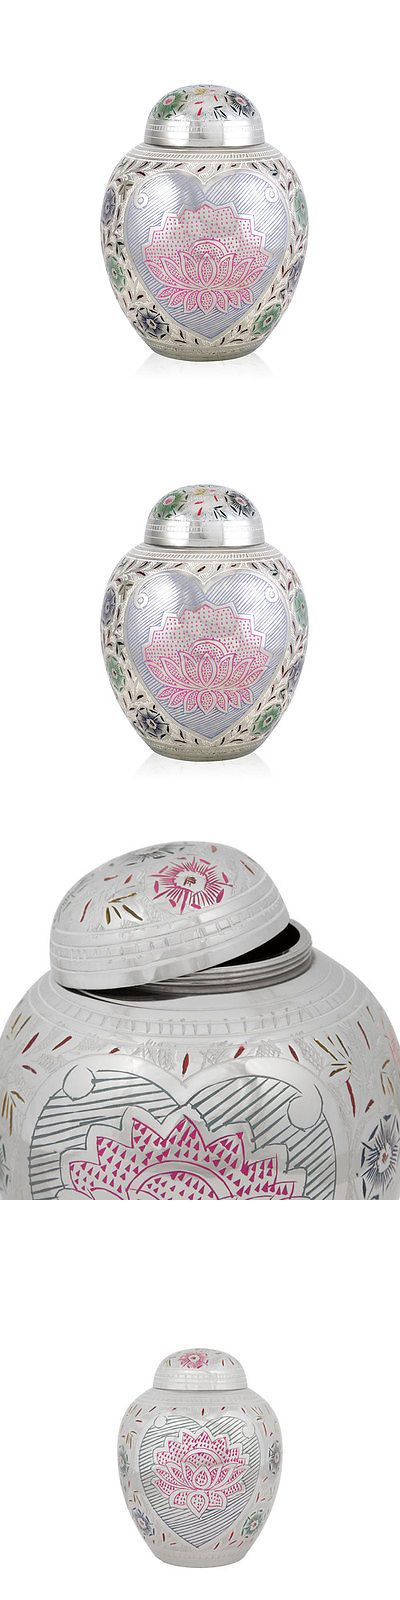 Pet Memorials and Urns 116391: Perfect Memorials Medium Lotus Blossom Pet Cremation Urn -> BUY IT NOW ONLY: $44.95 on eBay!